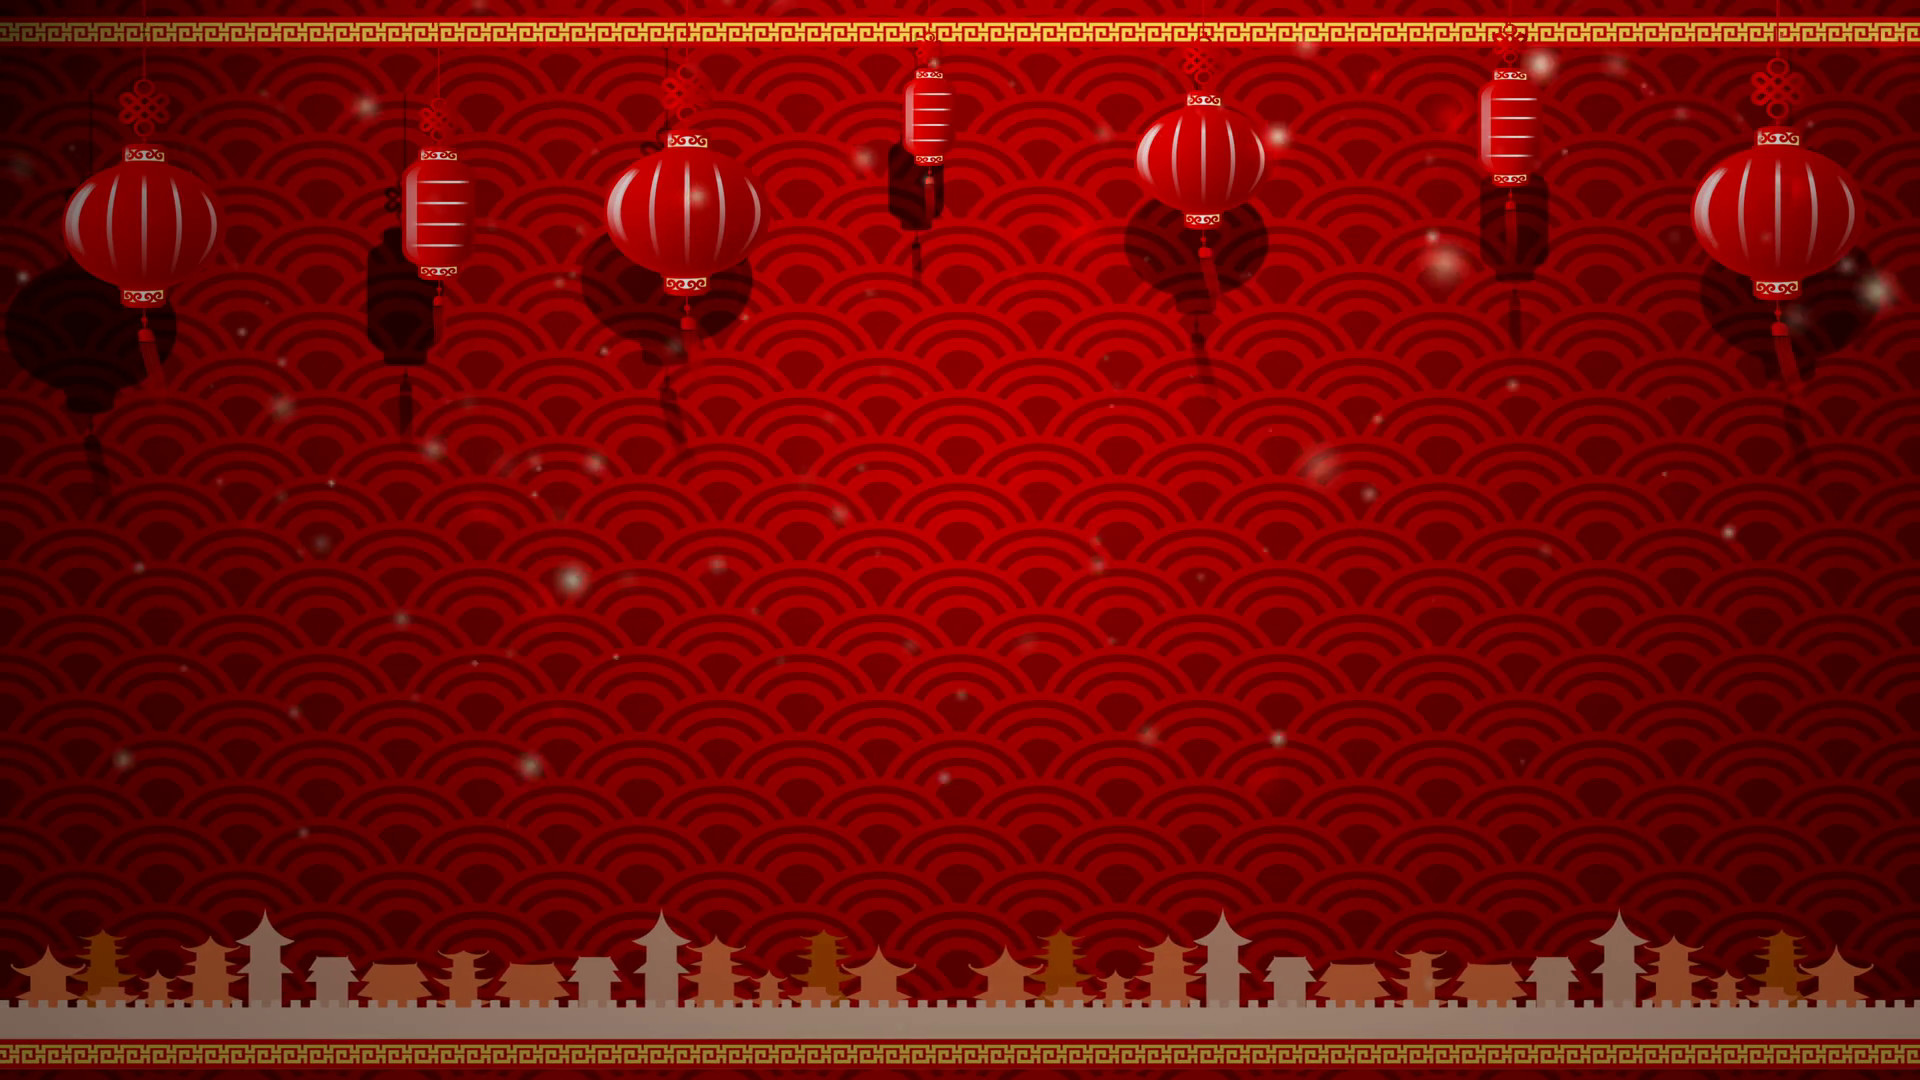 1920x1080 Chinese Art Background And Red Lantern With Moving Border With Copy Space  And Loop 002 Motion Background - Storyblocks Video